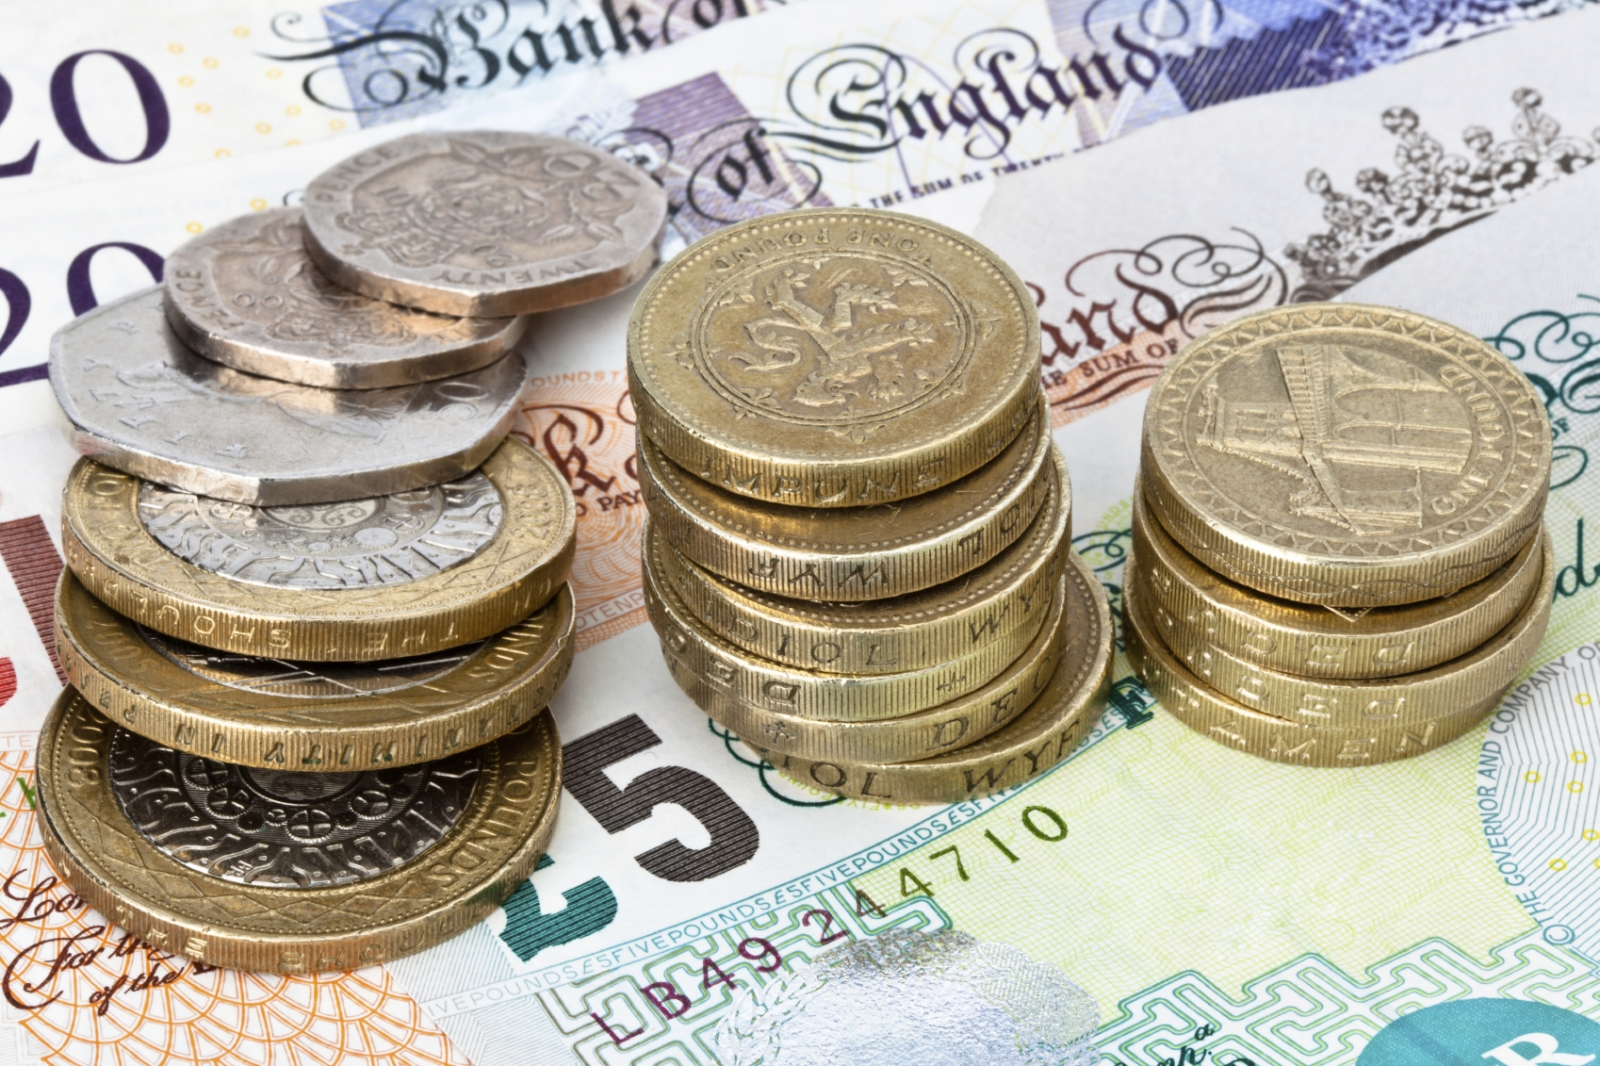 uk pound money currency sterling | Econ Alerts